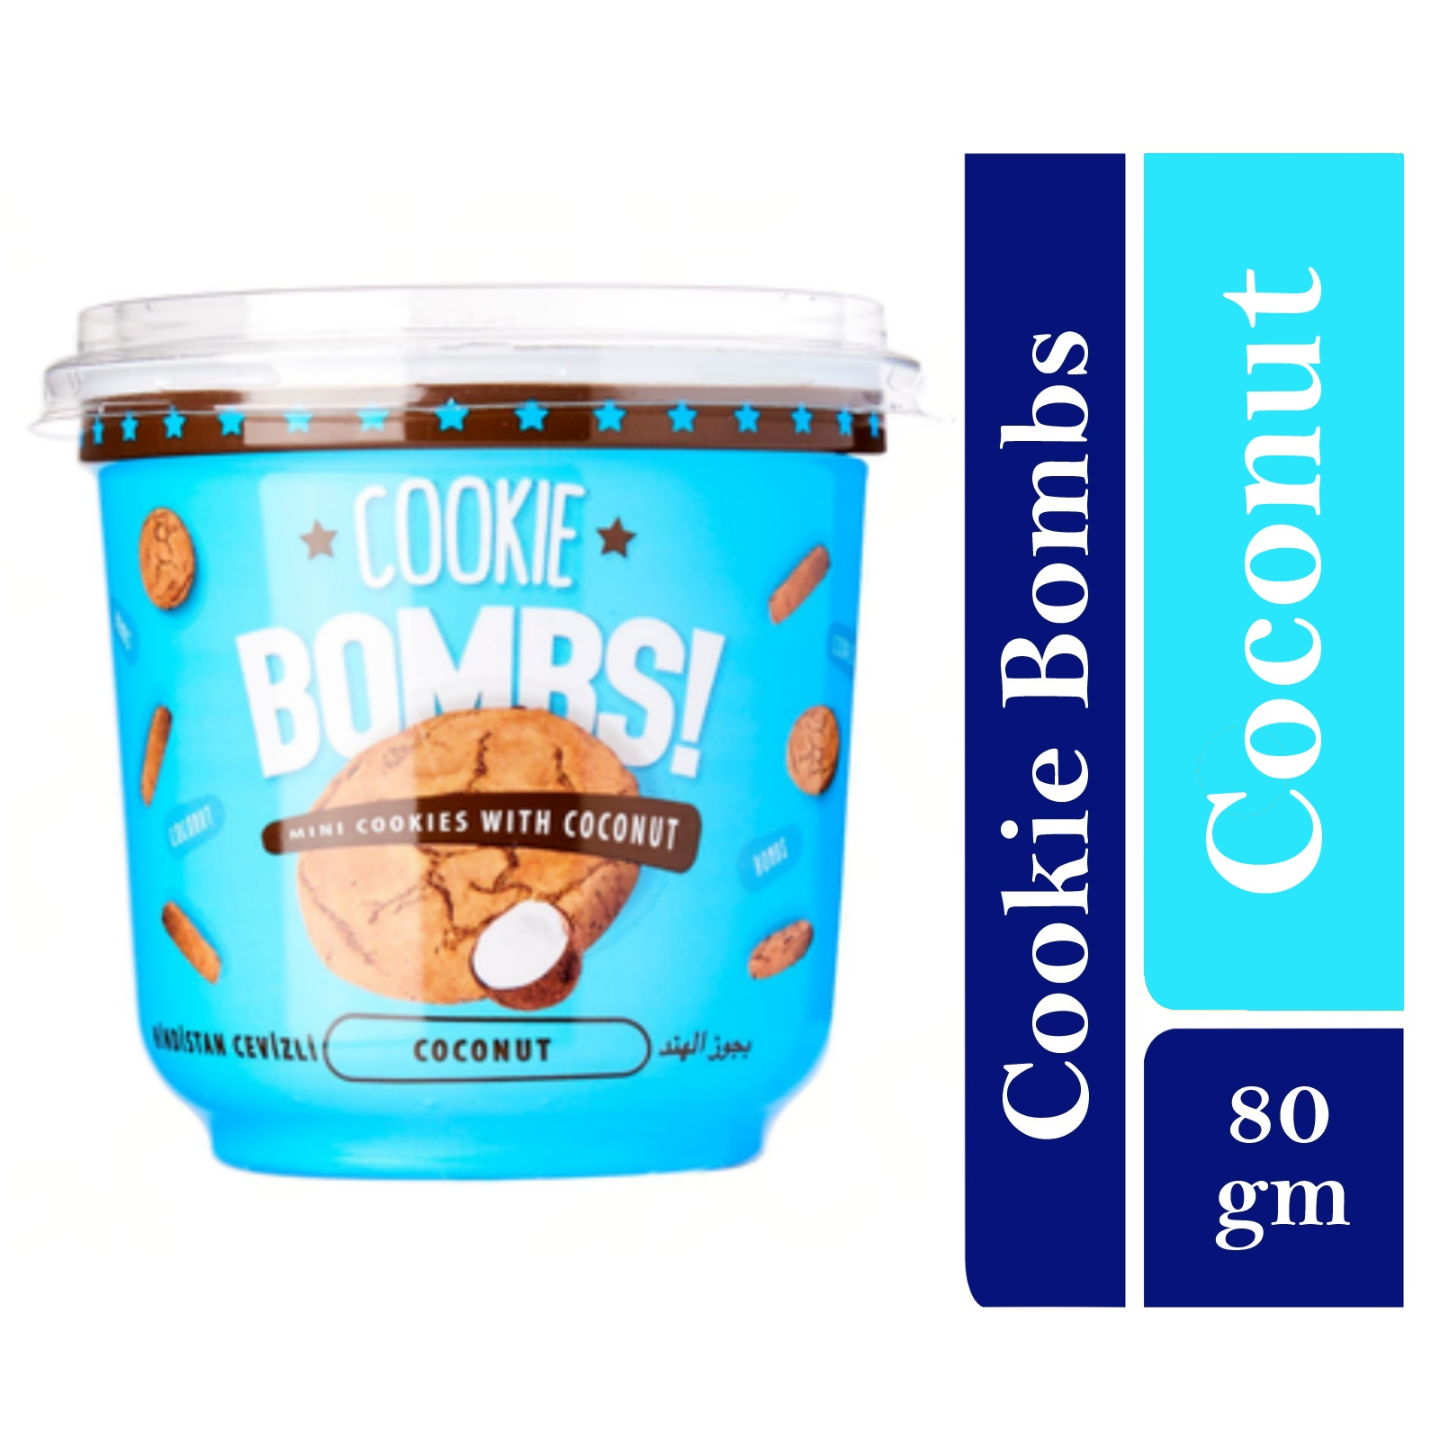 Bombs Mini Cookies with Coconut Flavor